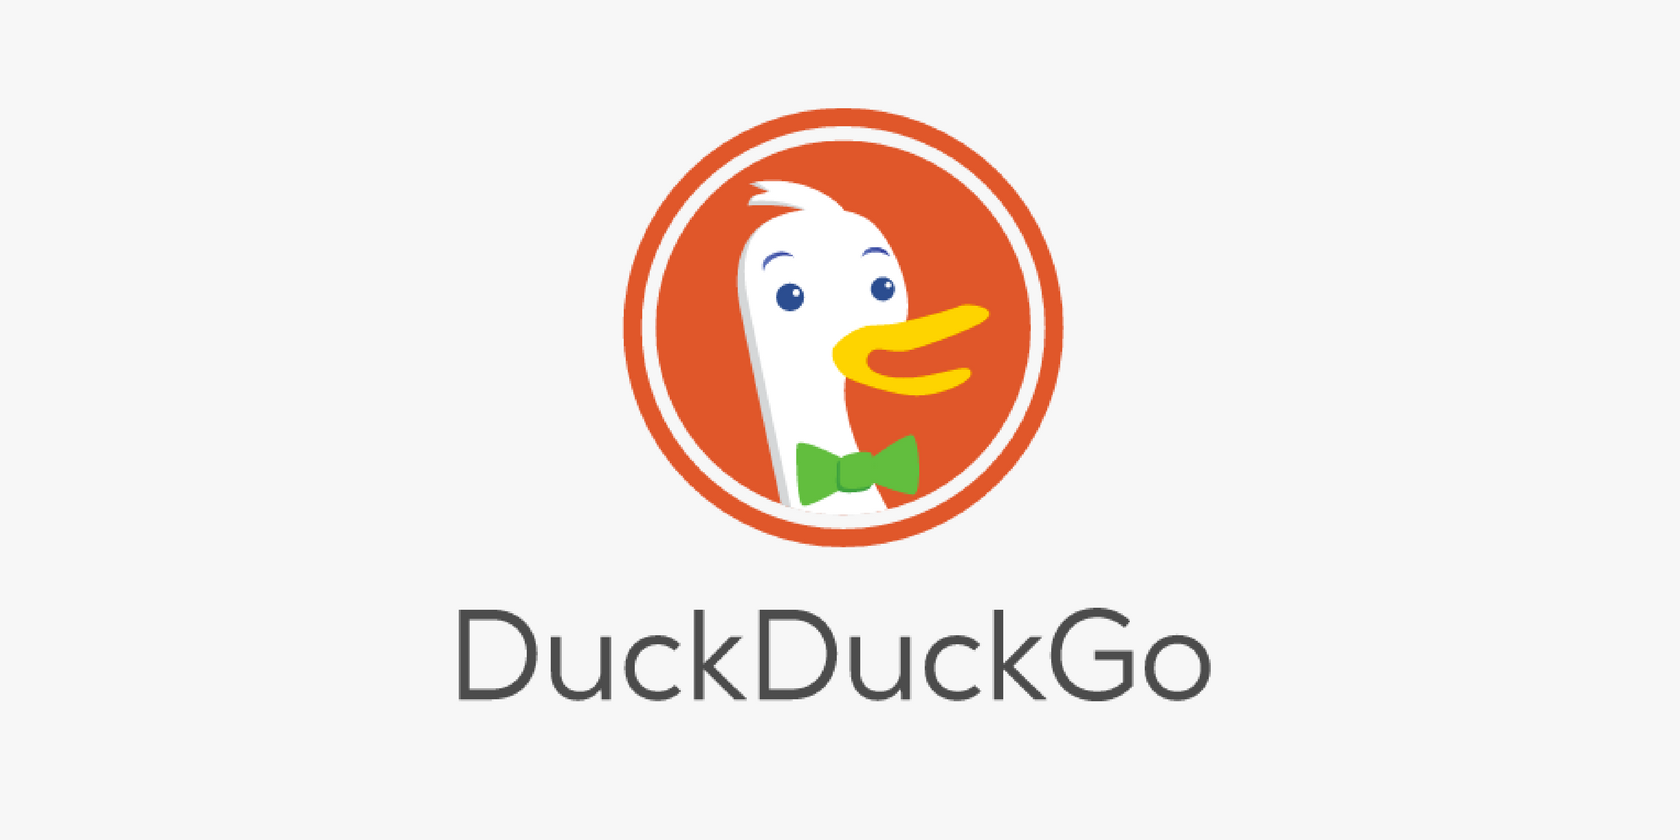 DuckDuckGo Has Plans to Be More Than Just a Search Engine by @MattGSouthern